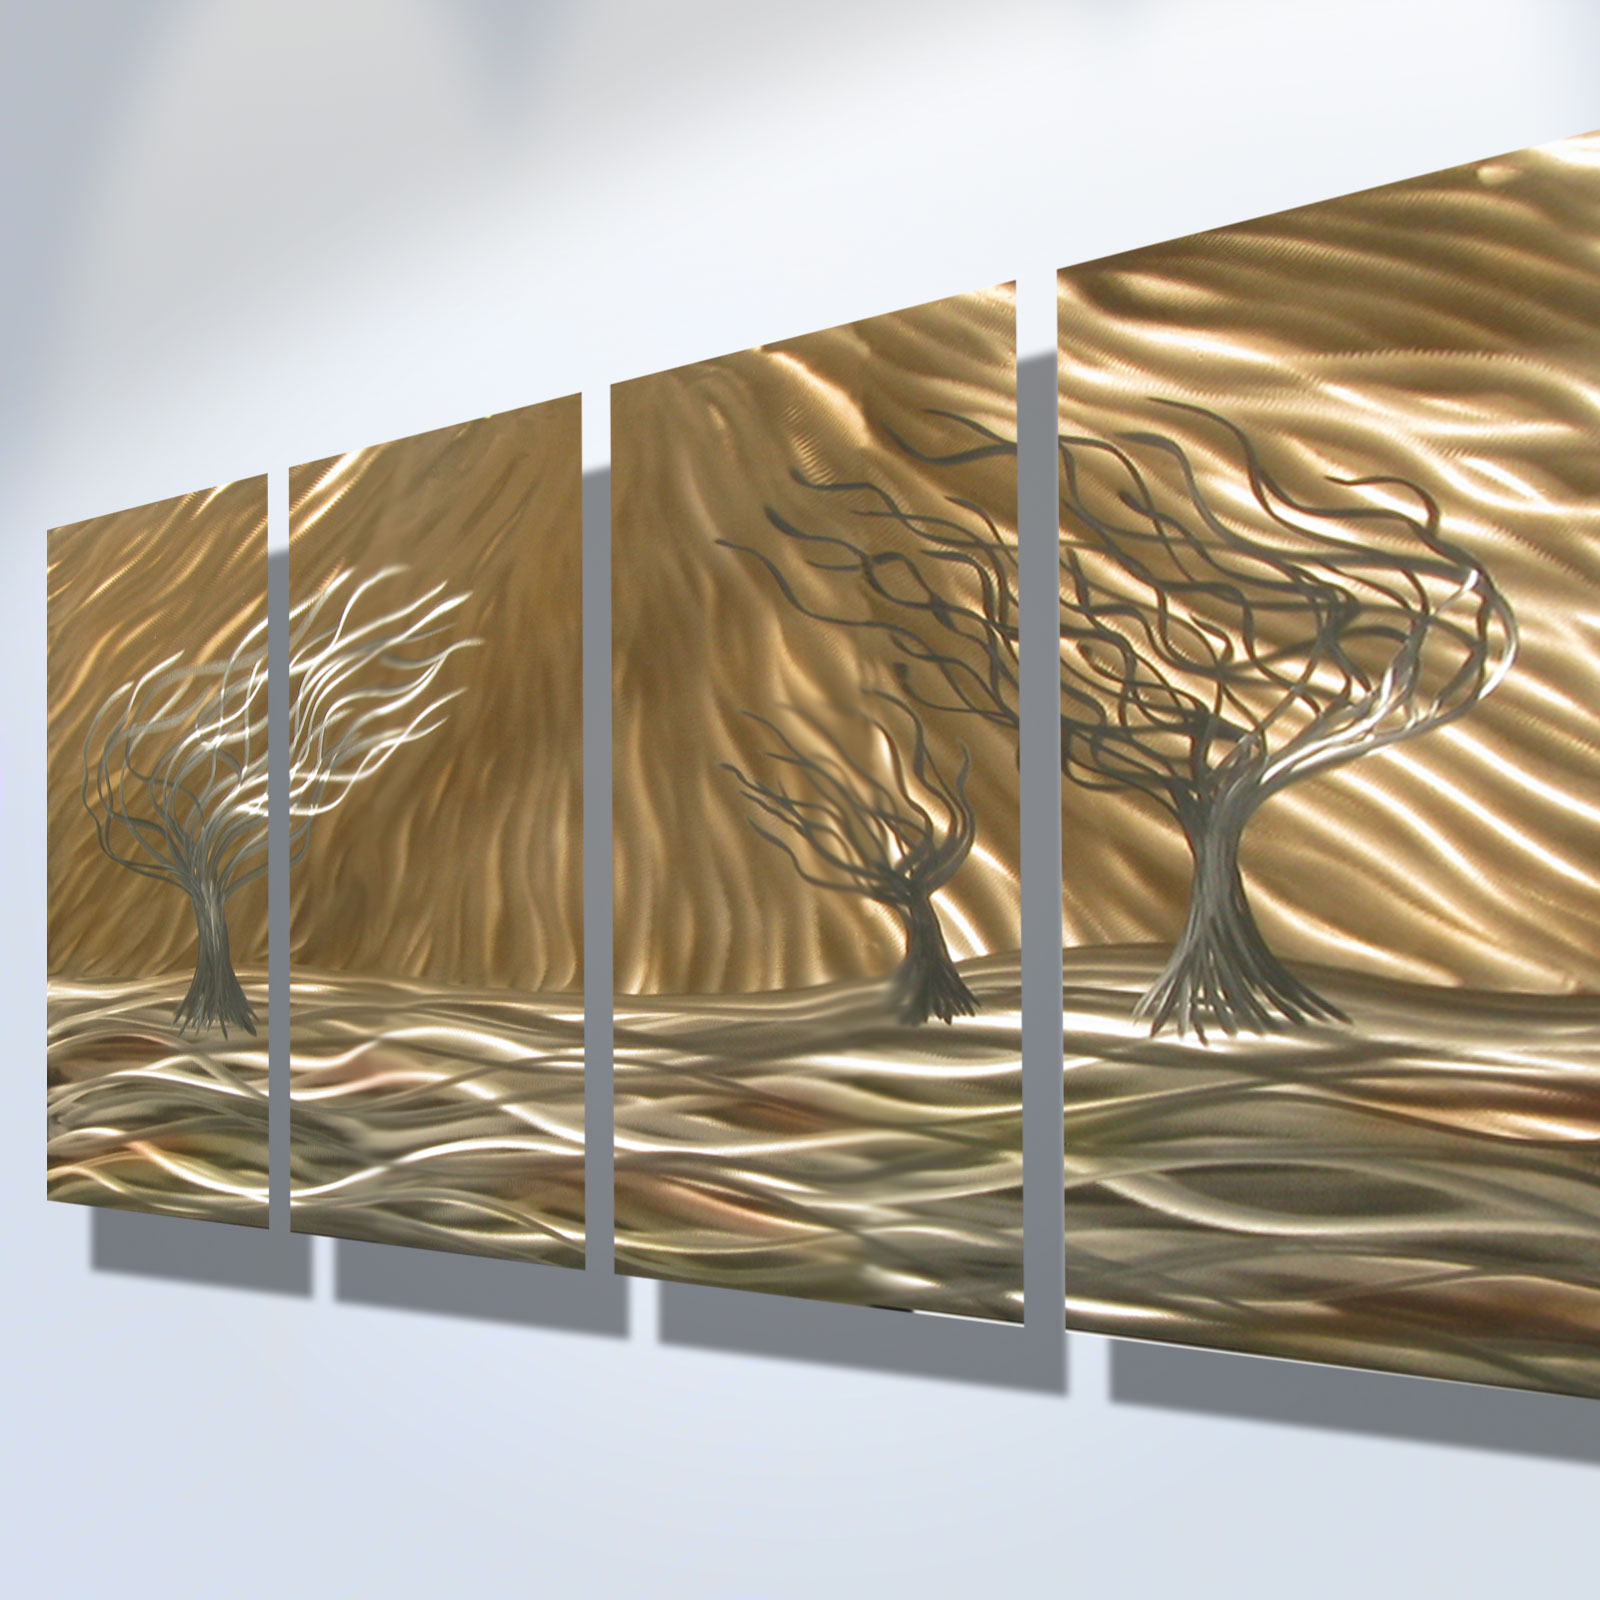 Discount Metal Wall Art 3 Trees 4 Panel  Abstract Metal Wall Art Contemporary Modern